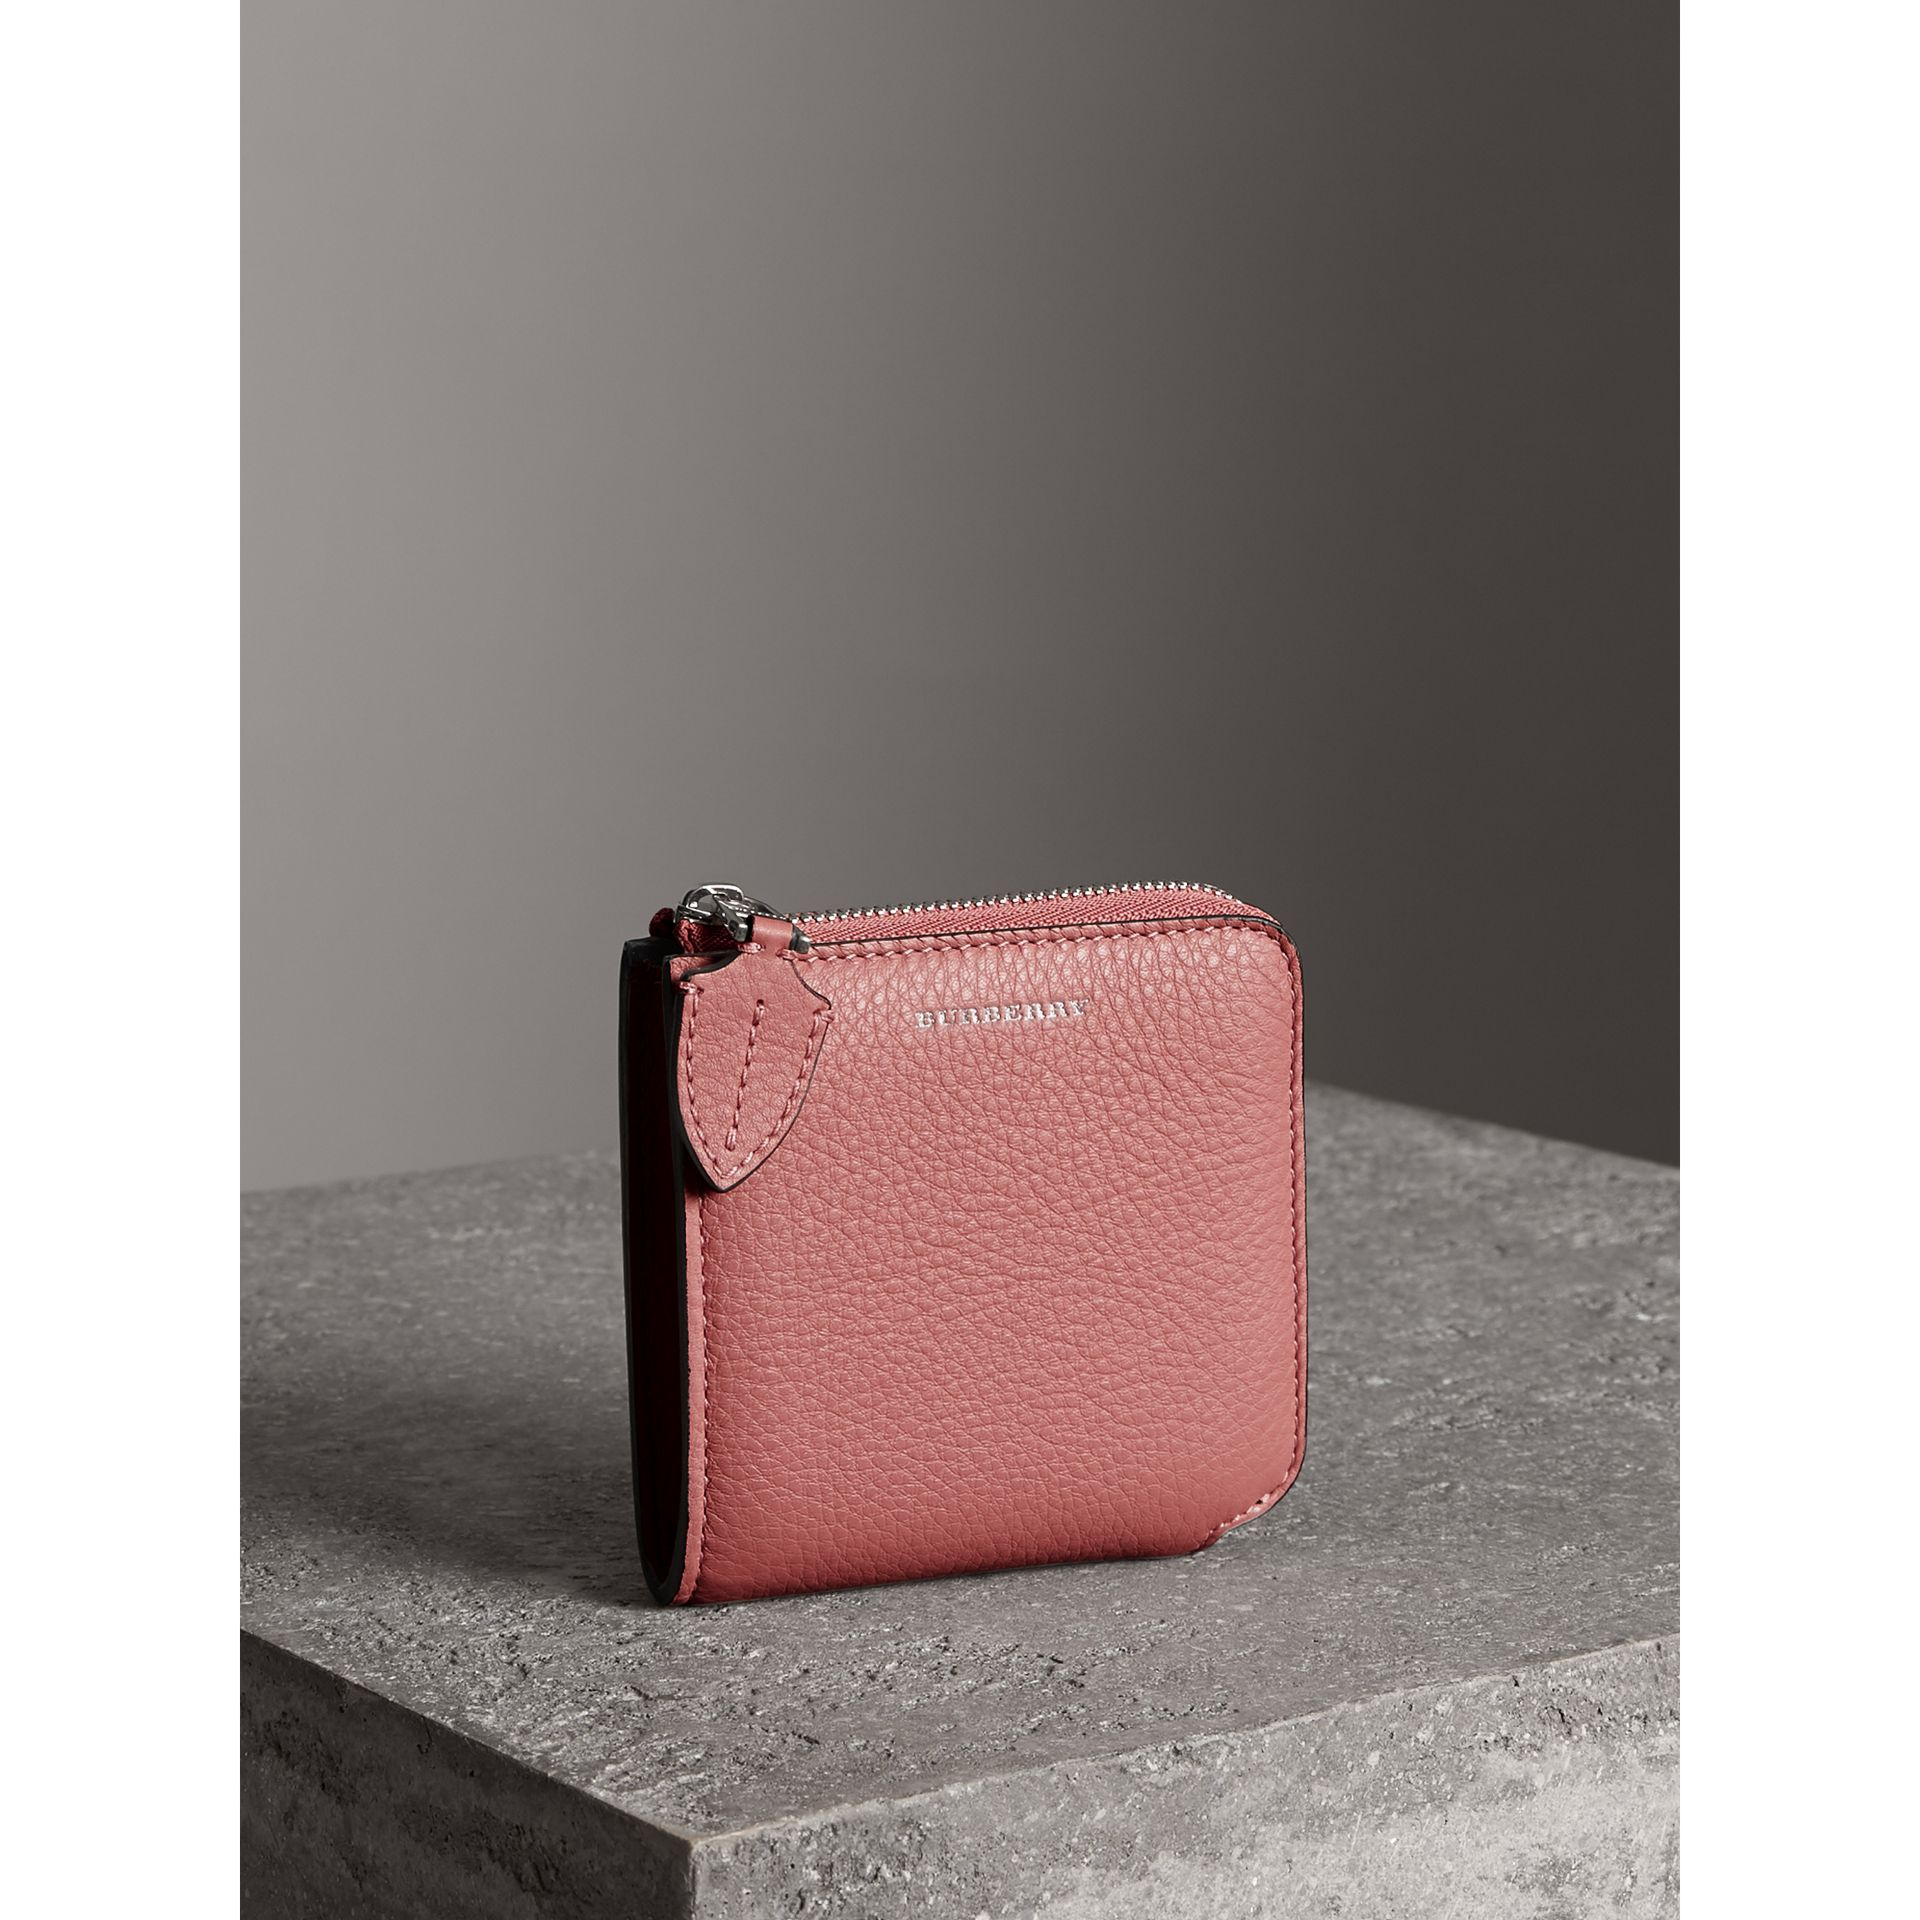 Grainy Leather Square Ziparound Wallet in Dusty Rose - Women | Burberry United Kingdom - gallery image 4